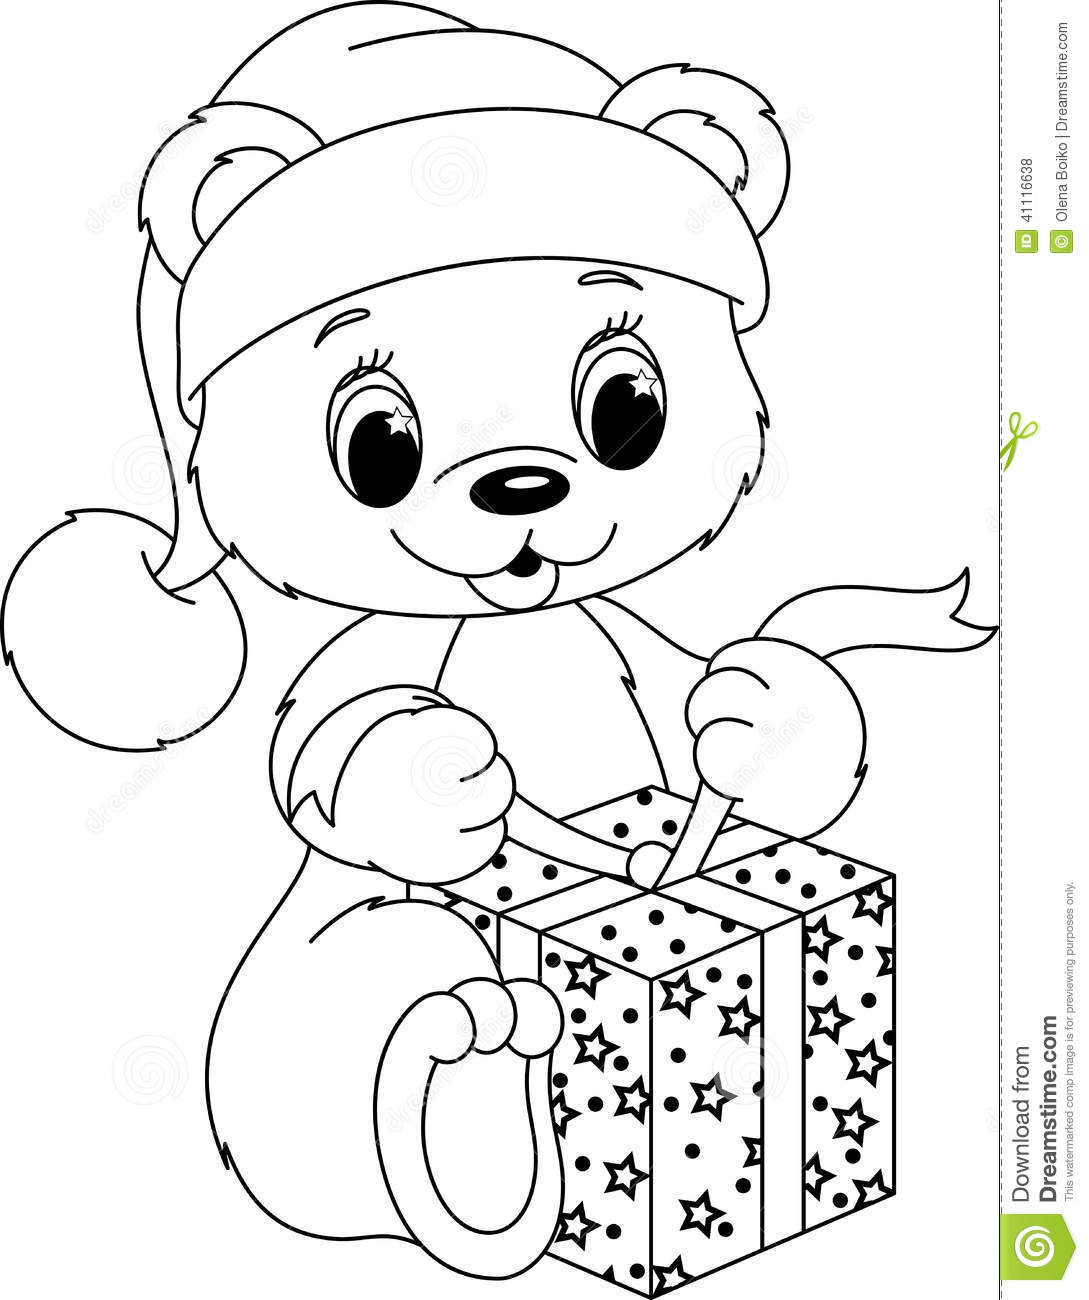 Christmas Teddy Bear Coloring Pages